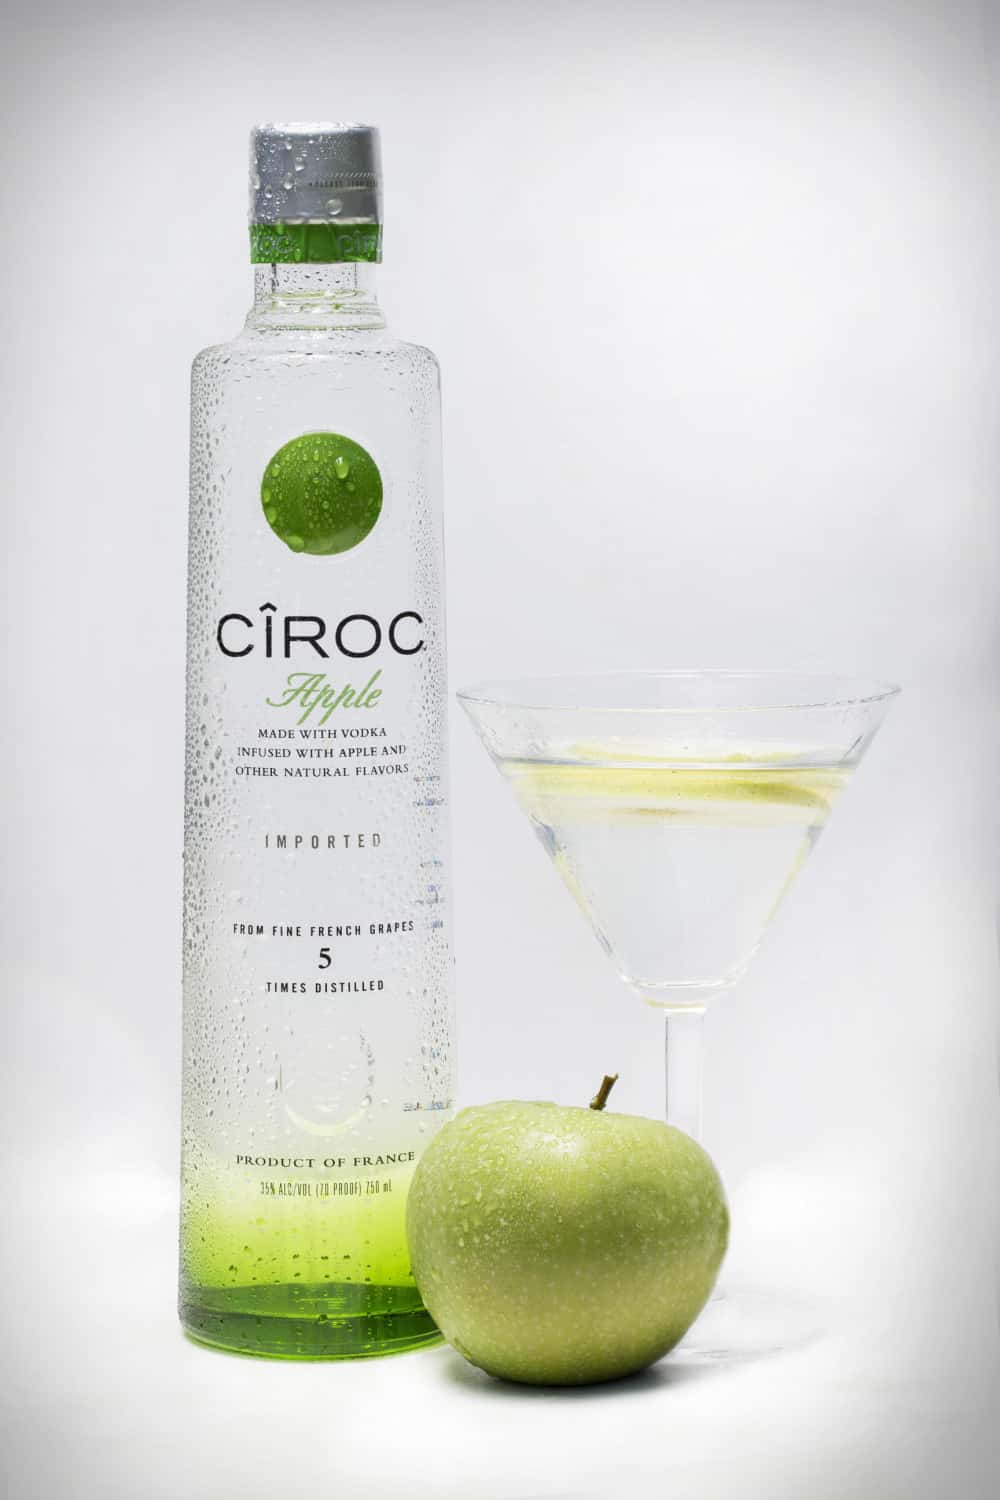 CIROC Apple Martini opt